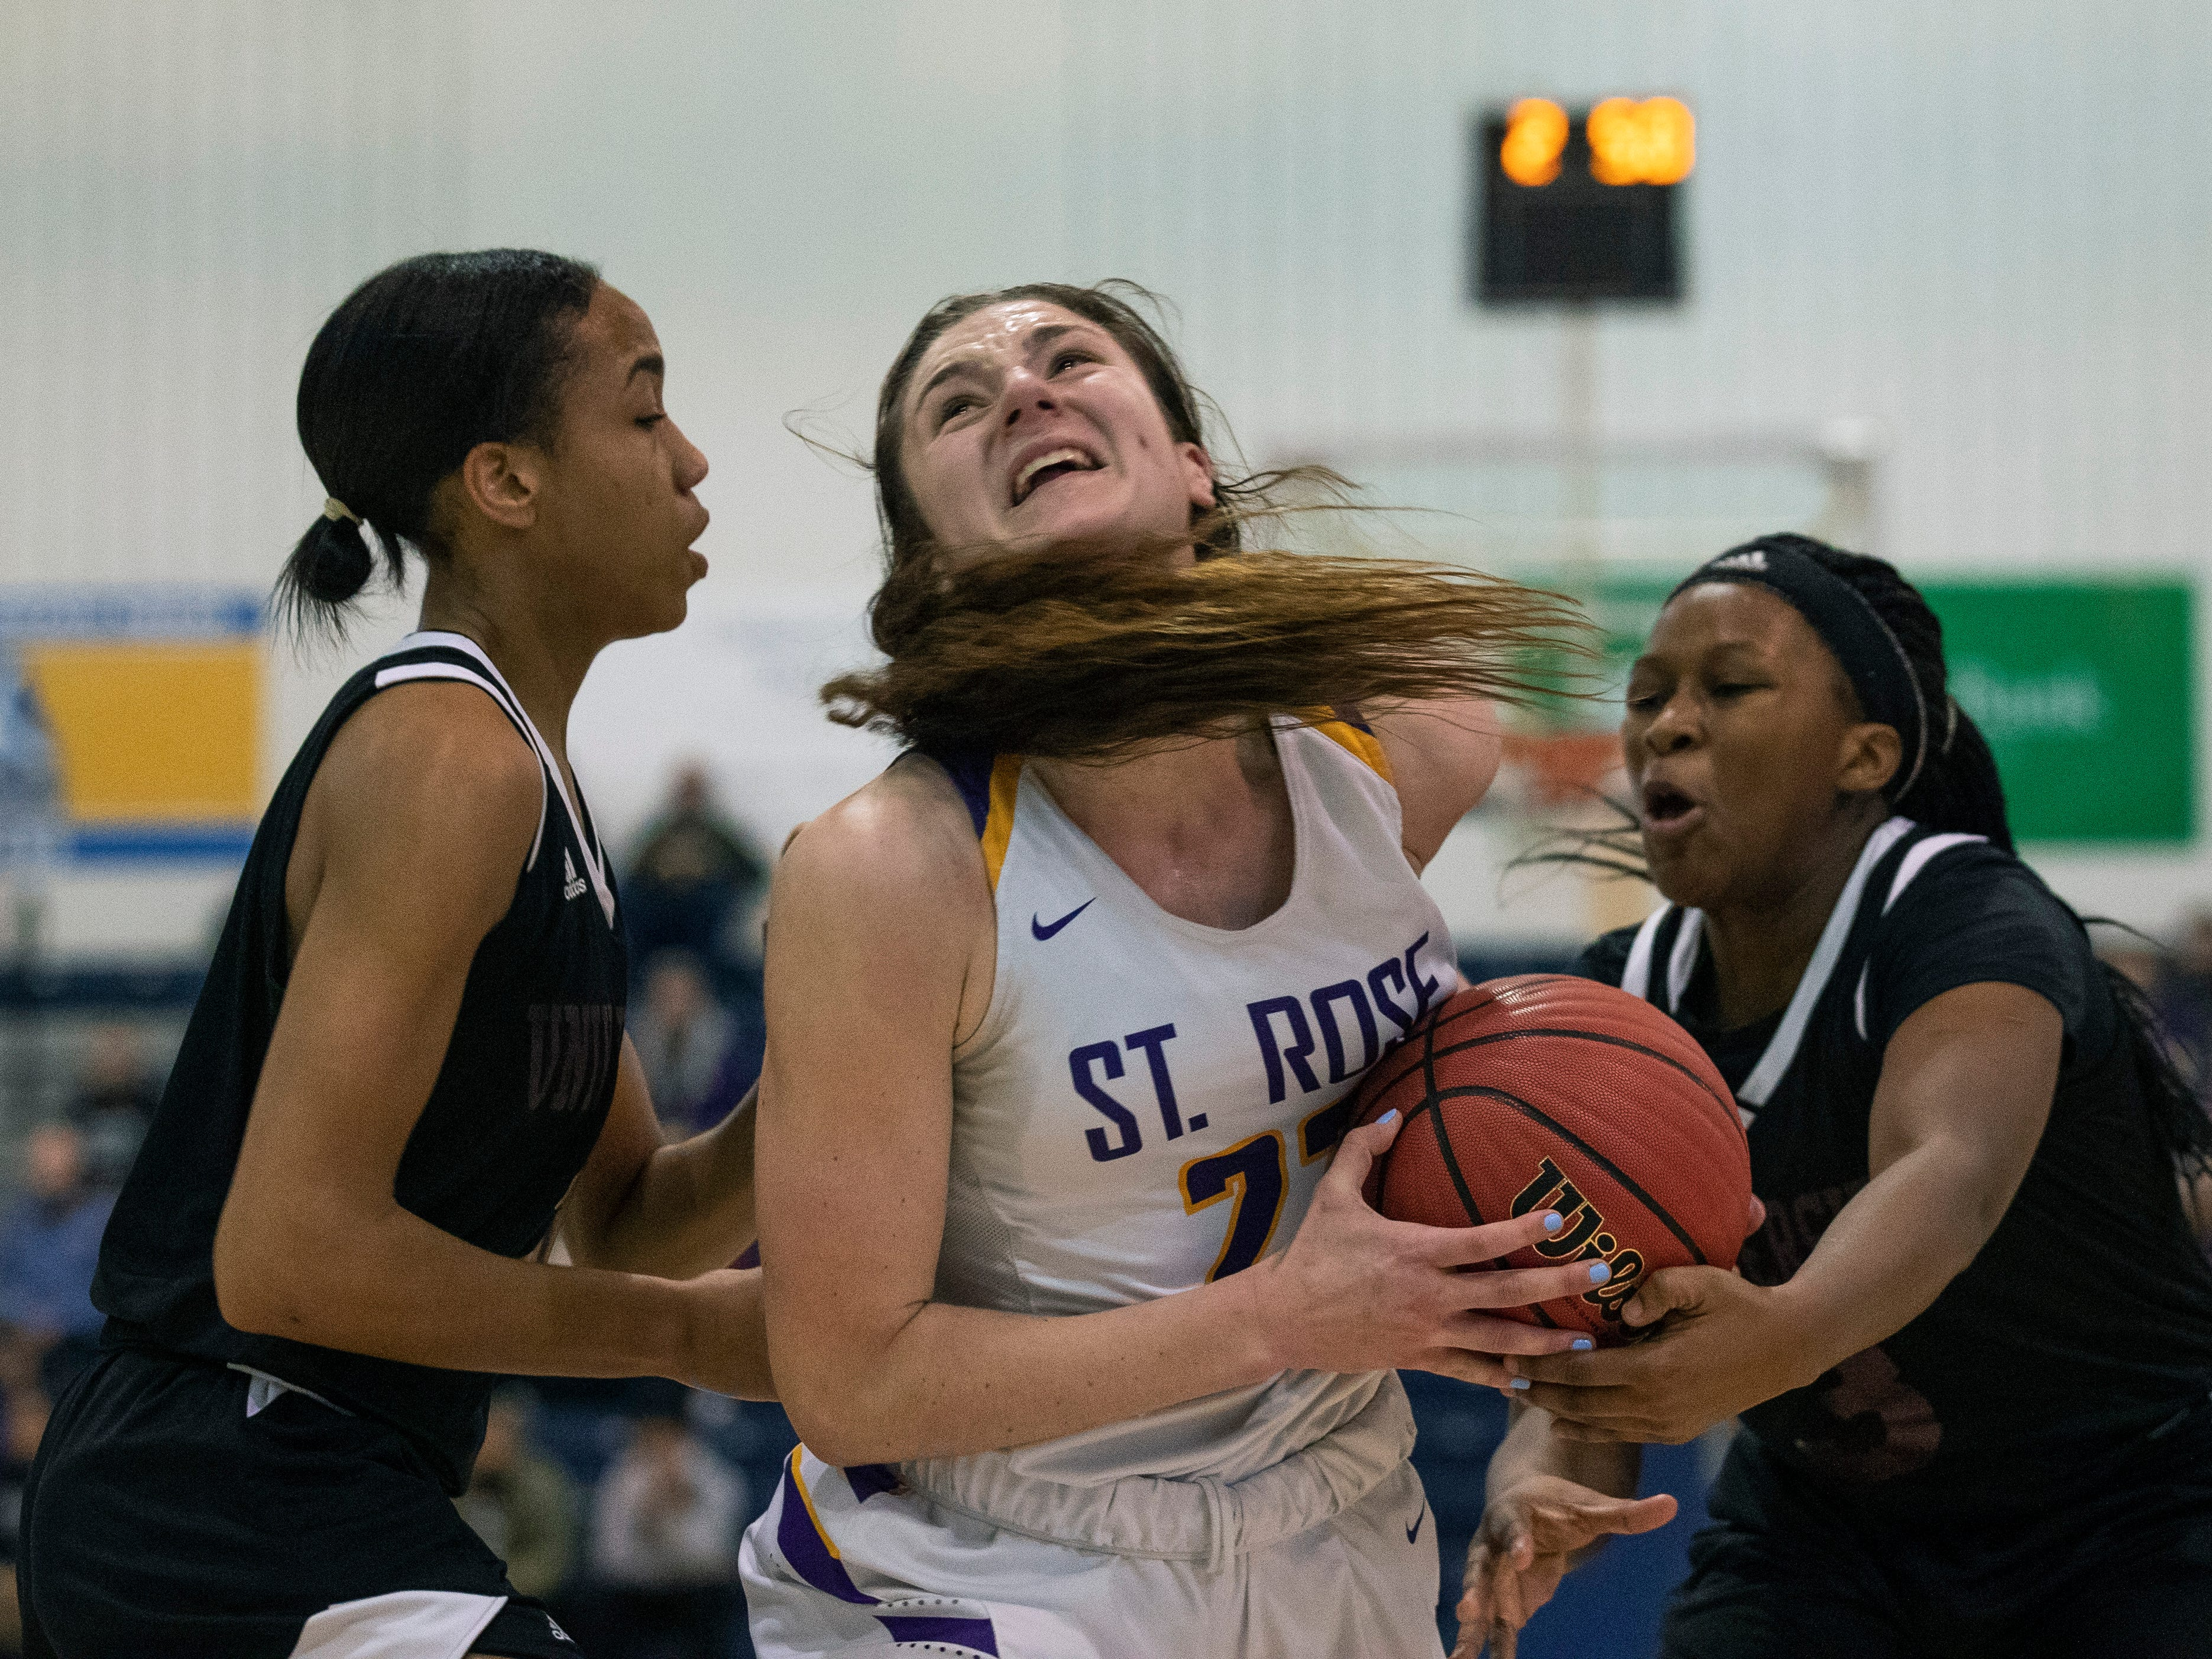 St Rose's Brynn Farrell during first half action. St Rose Girls Basketball vs University in Tournament of Champions opening round game in Toms River on March 12, 2019